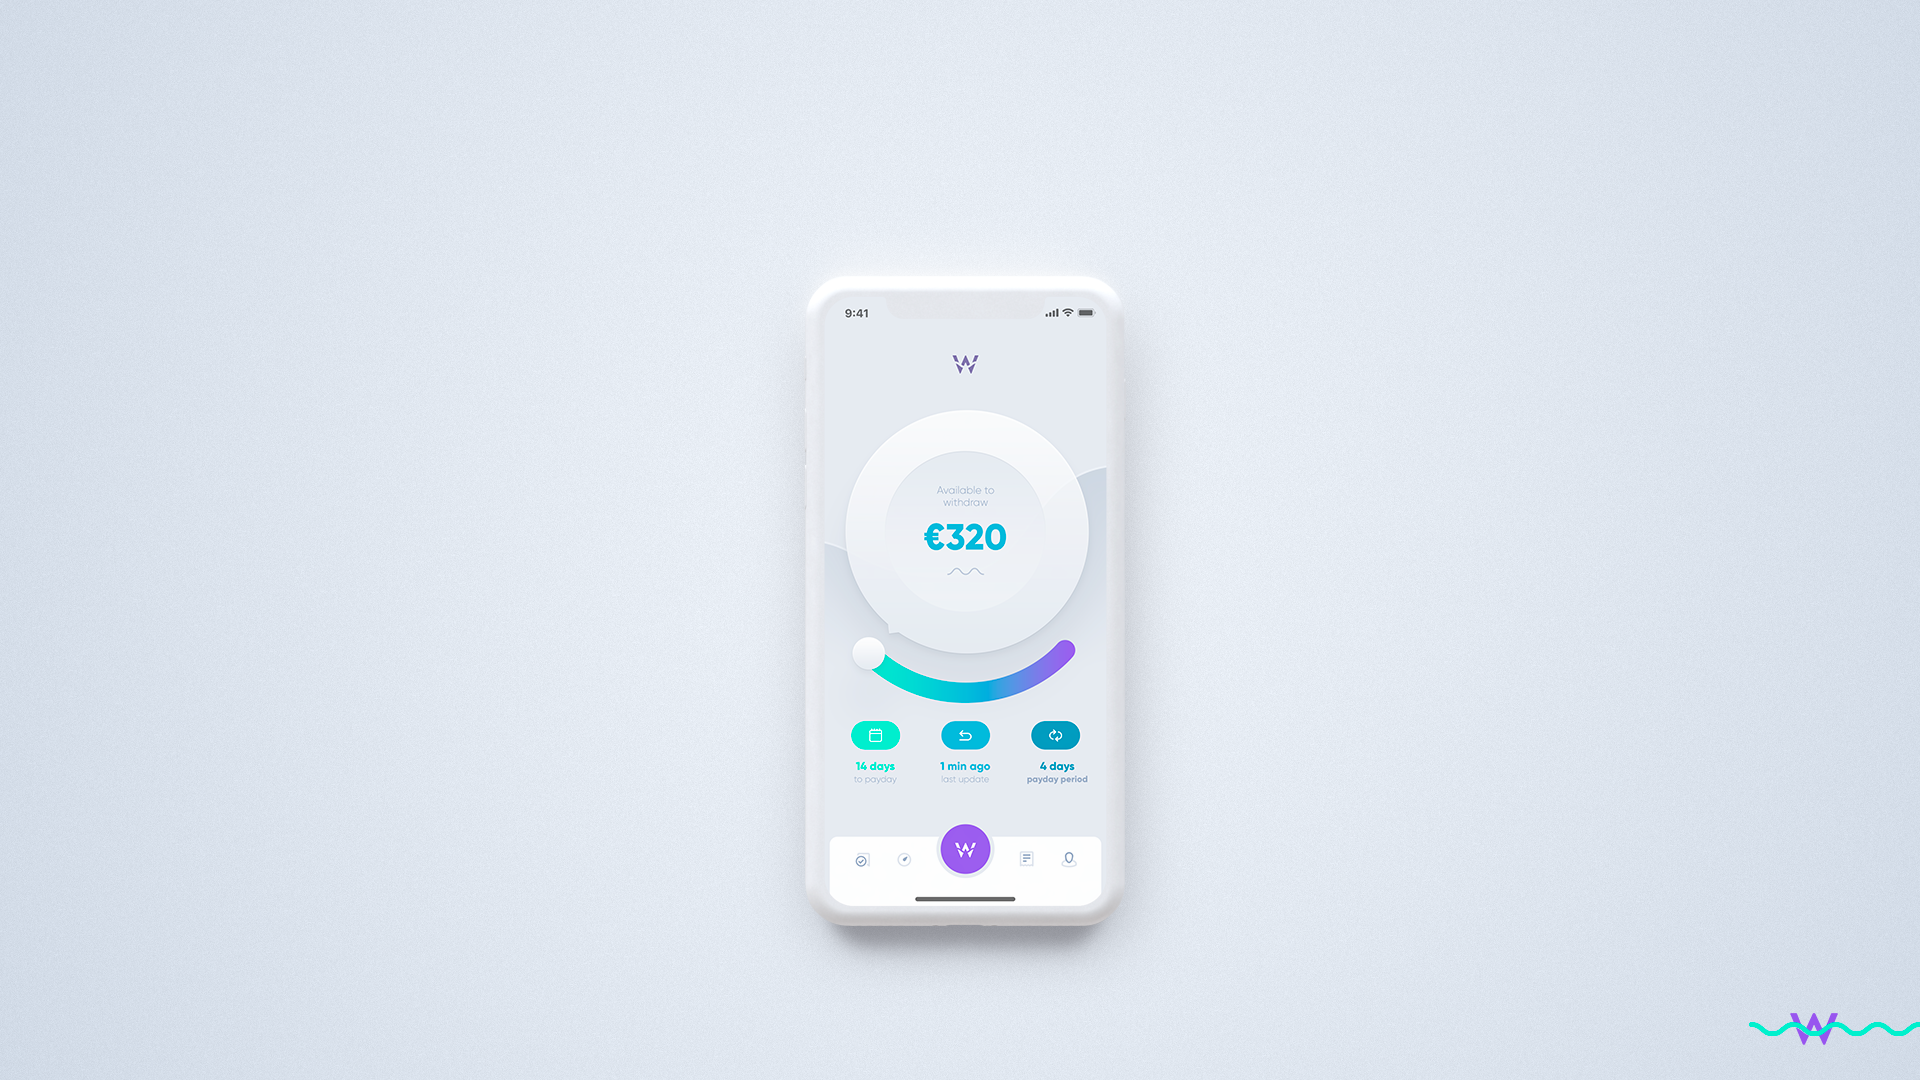 Income streaming service launches in Ireland - Instant access to earned wages before payday